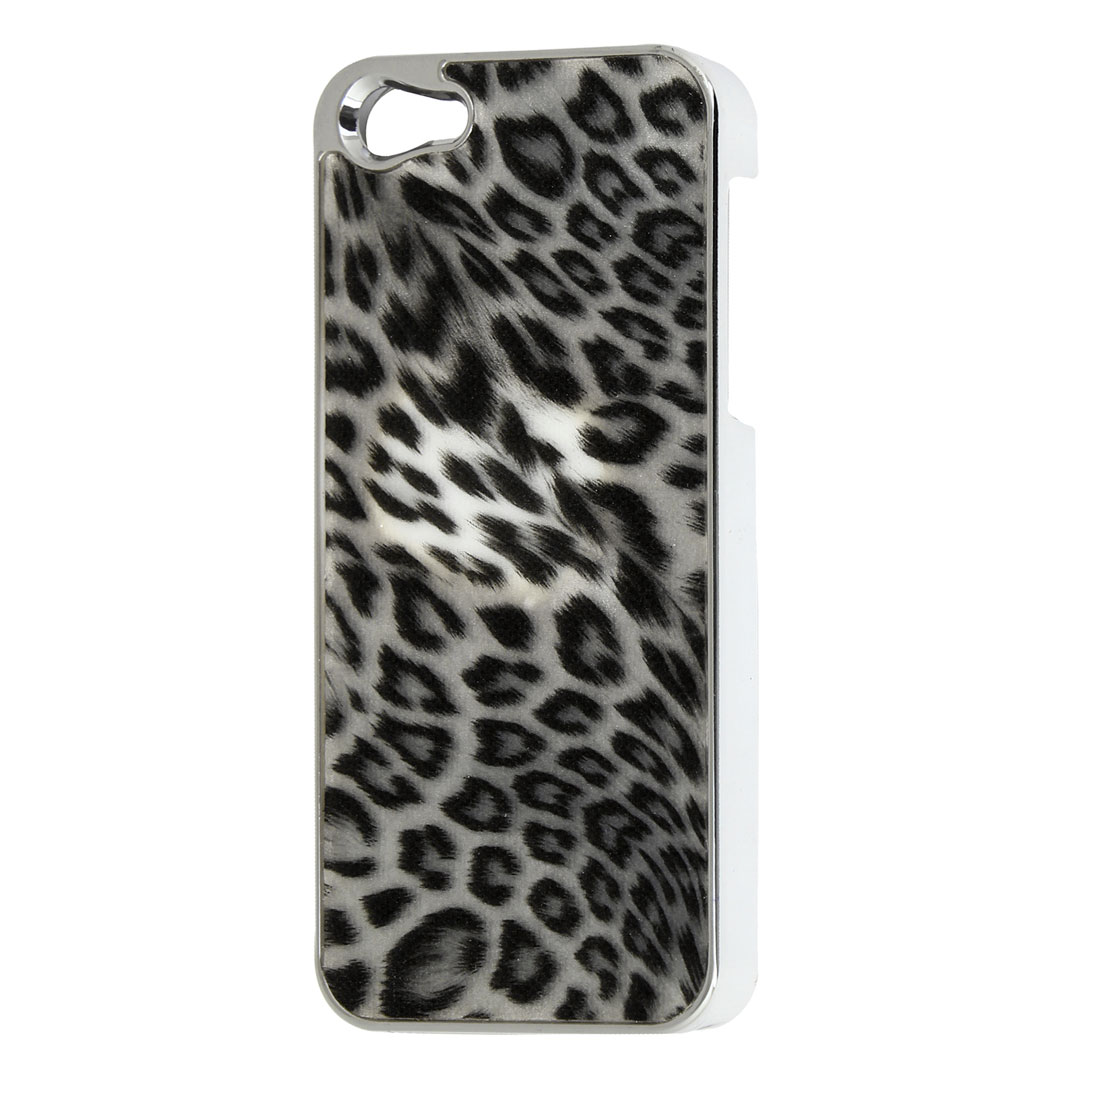 Black Leopard Pattern Hard Plastic Back Case Cover for iPhone 5 5G